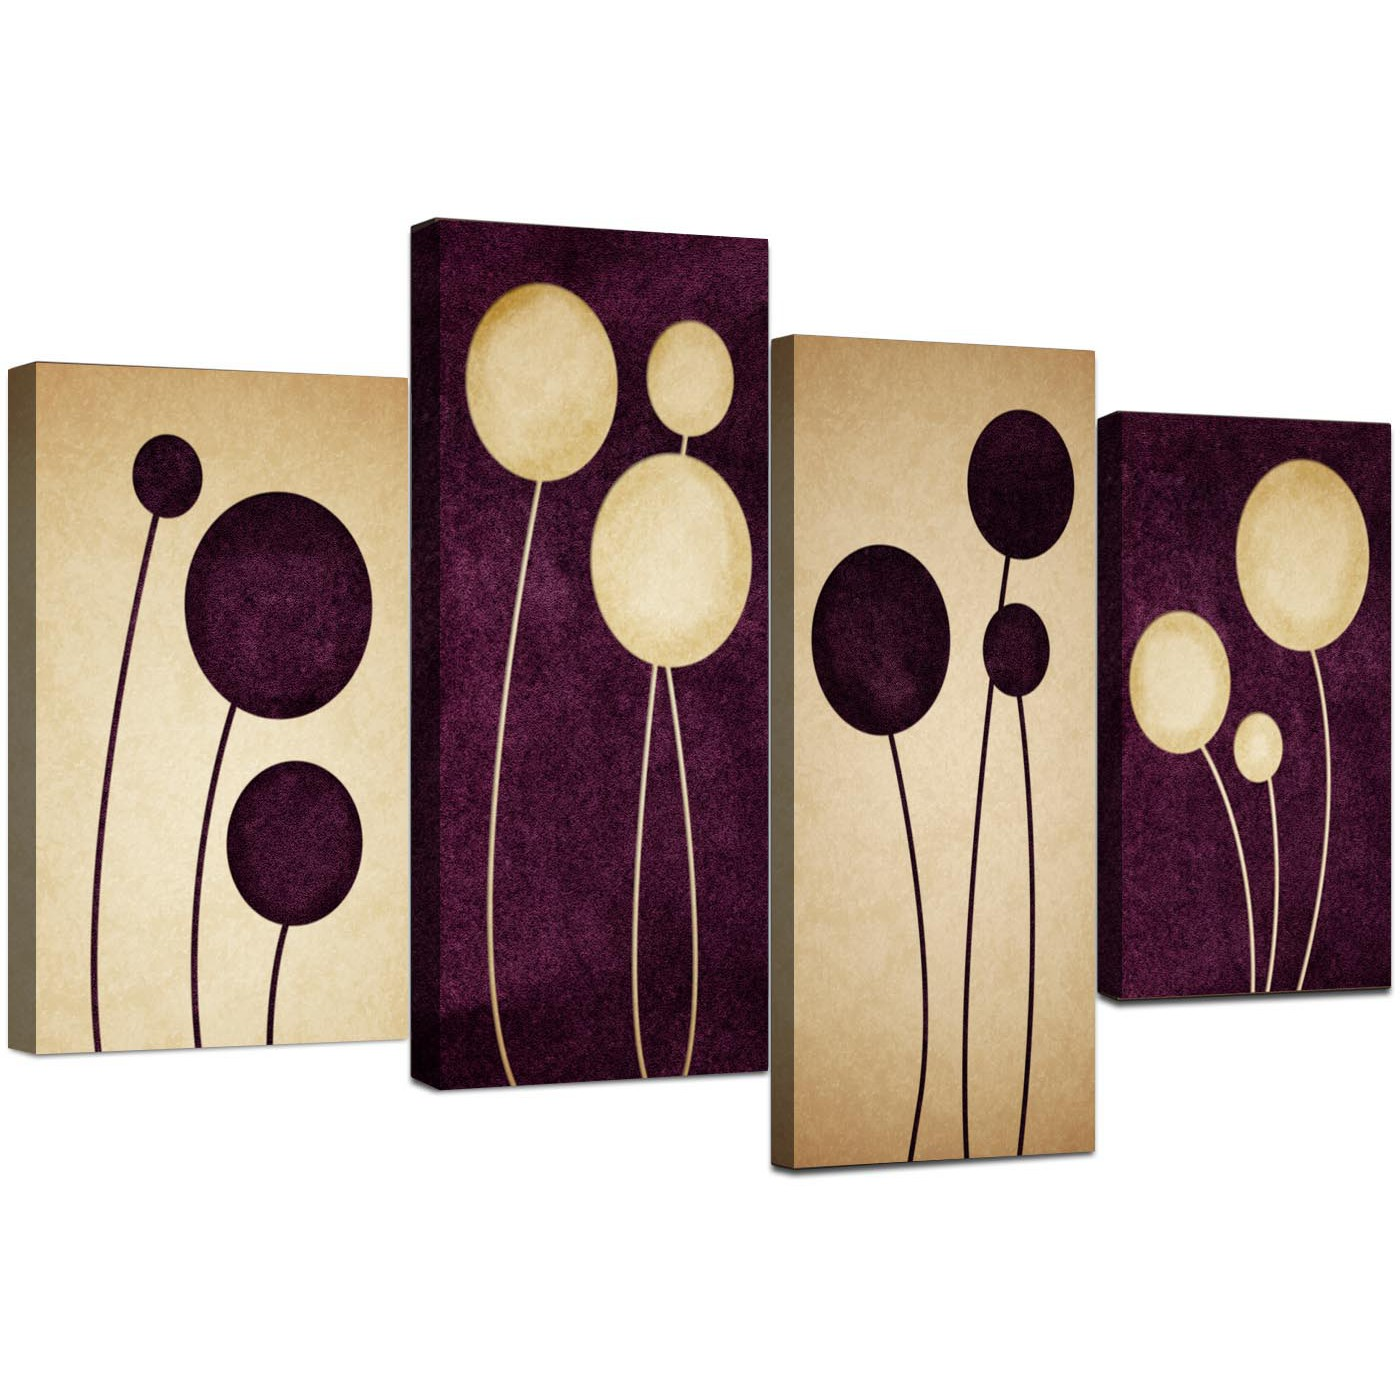 Abstract Wall Art Canvas timing is everything graphic art on wrapped canvas. find this pin